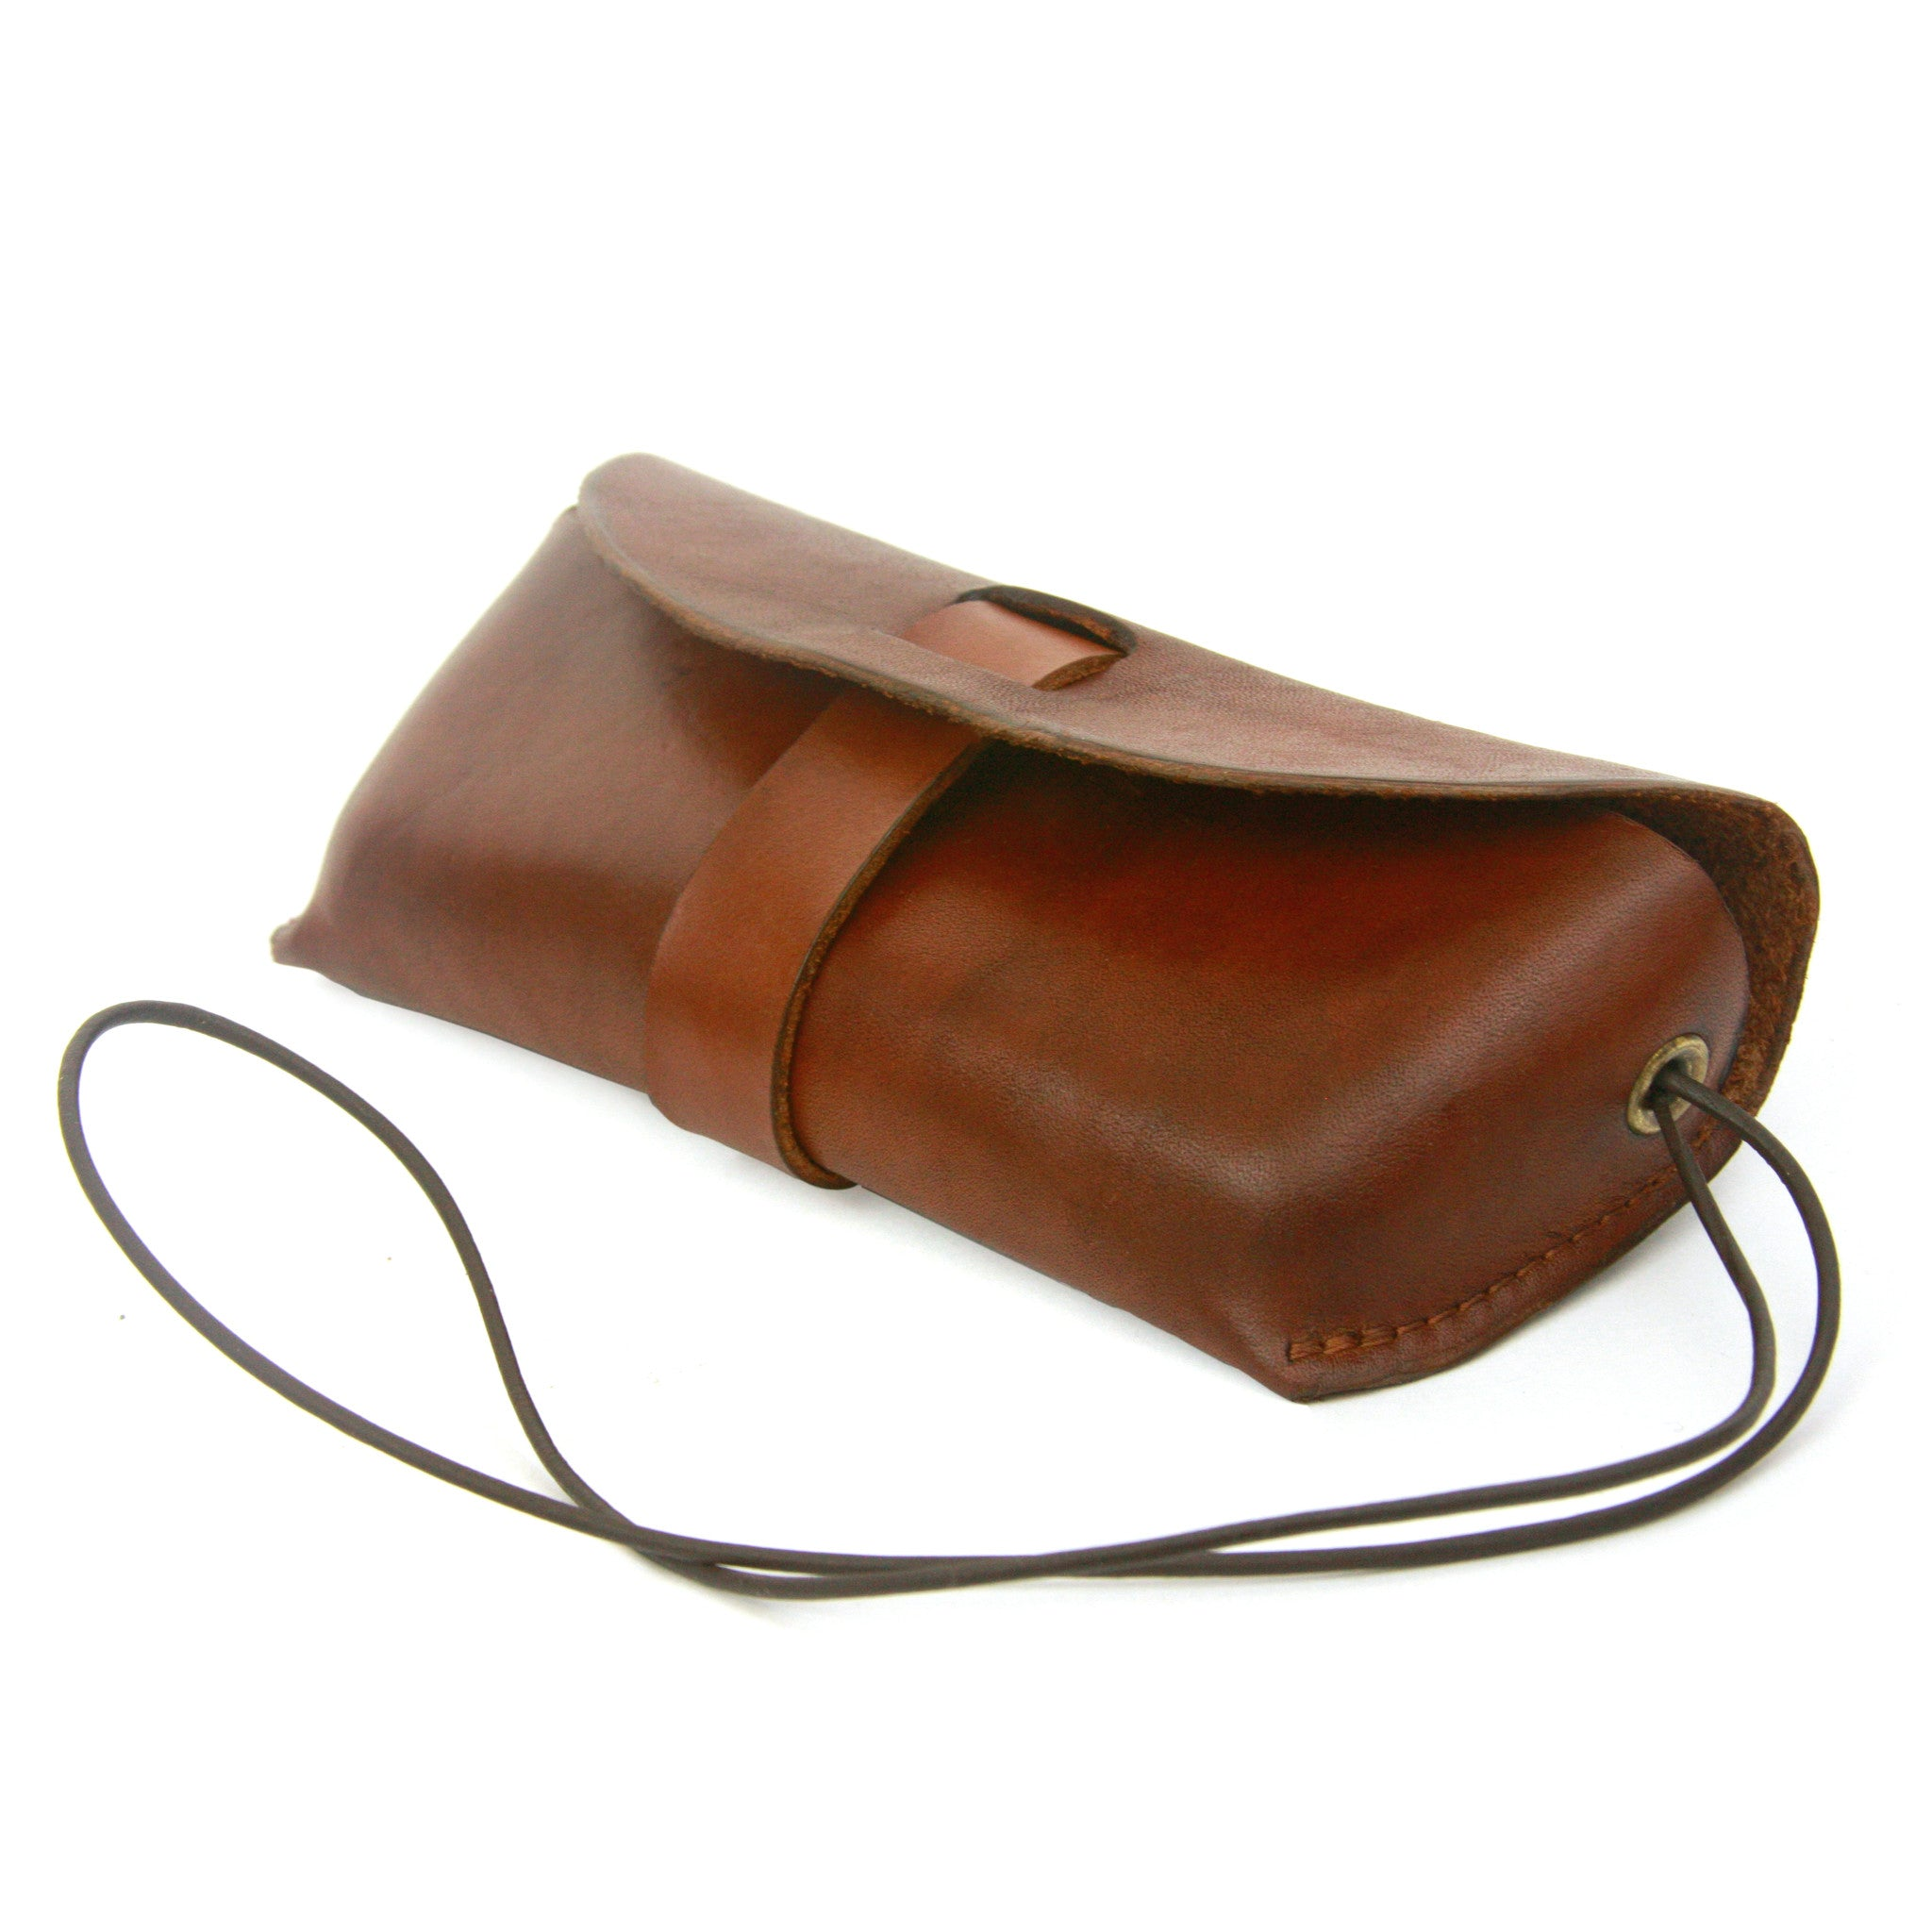 Glasses case, leather glasses case, sun glasses case, croakie, handmade leather case, leather case to keep your glasses protected and secure, featuring a multi-functional leather croakie for hanging either the case or your glasses around your neck.